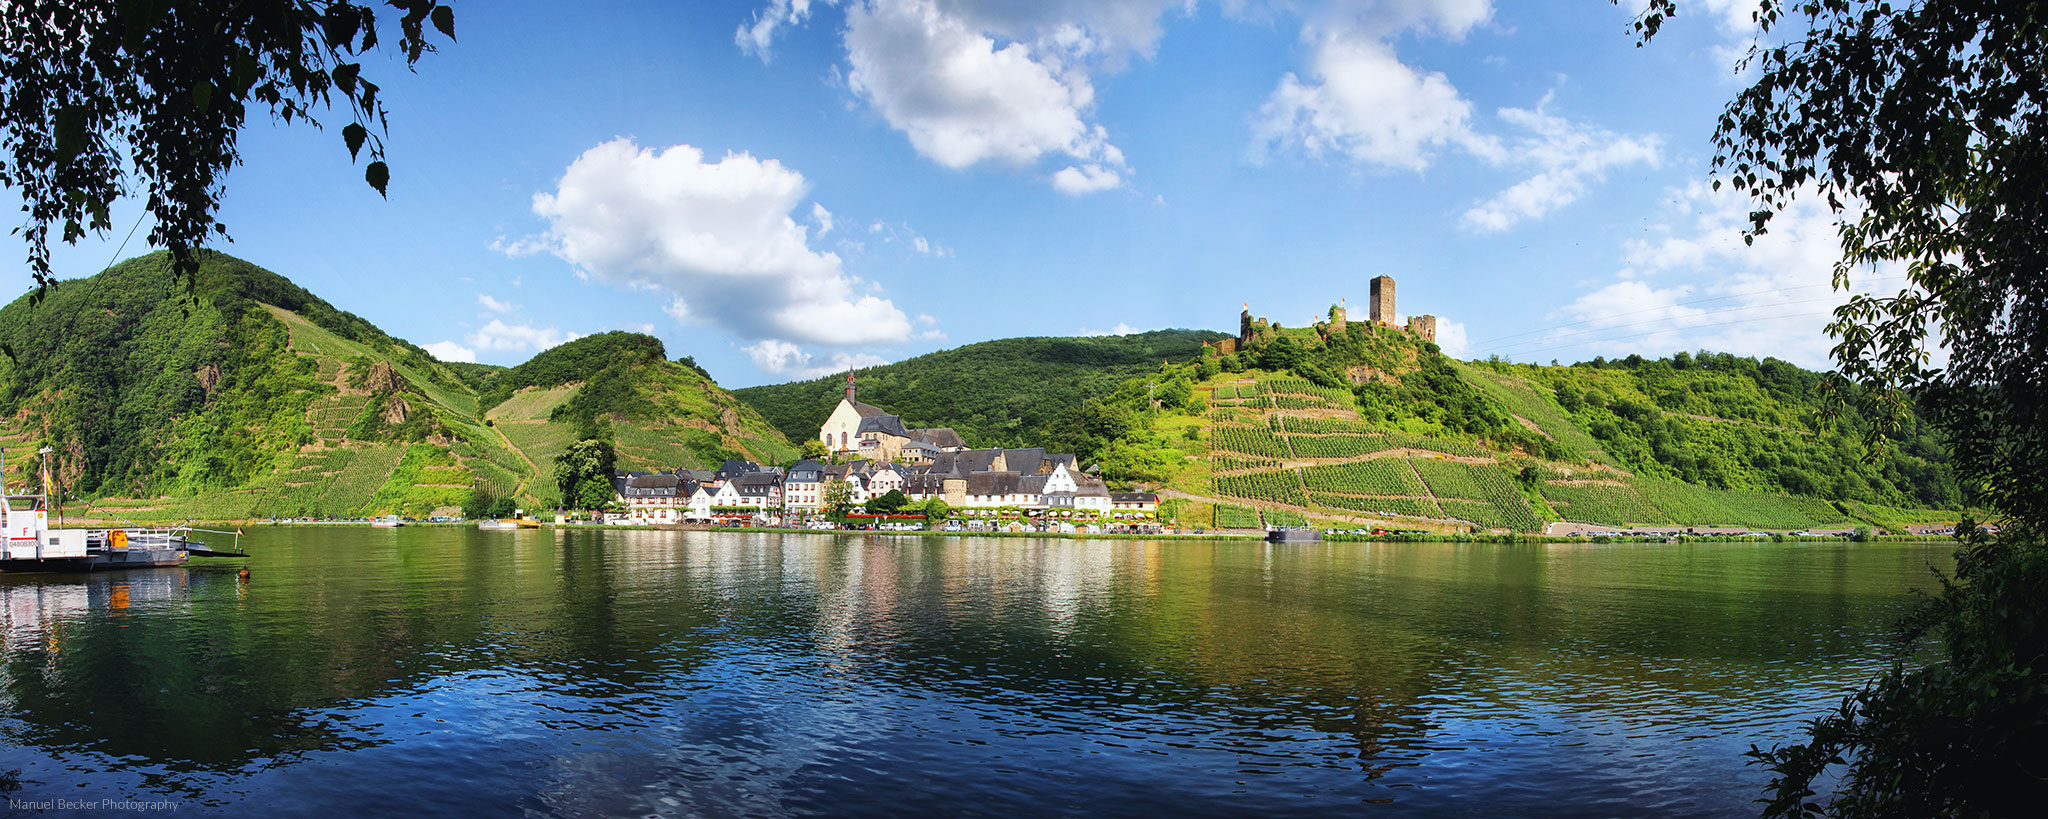 Panorama of Beilstein at Moselle, Germany